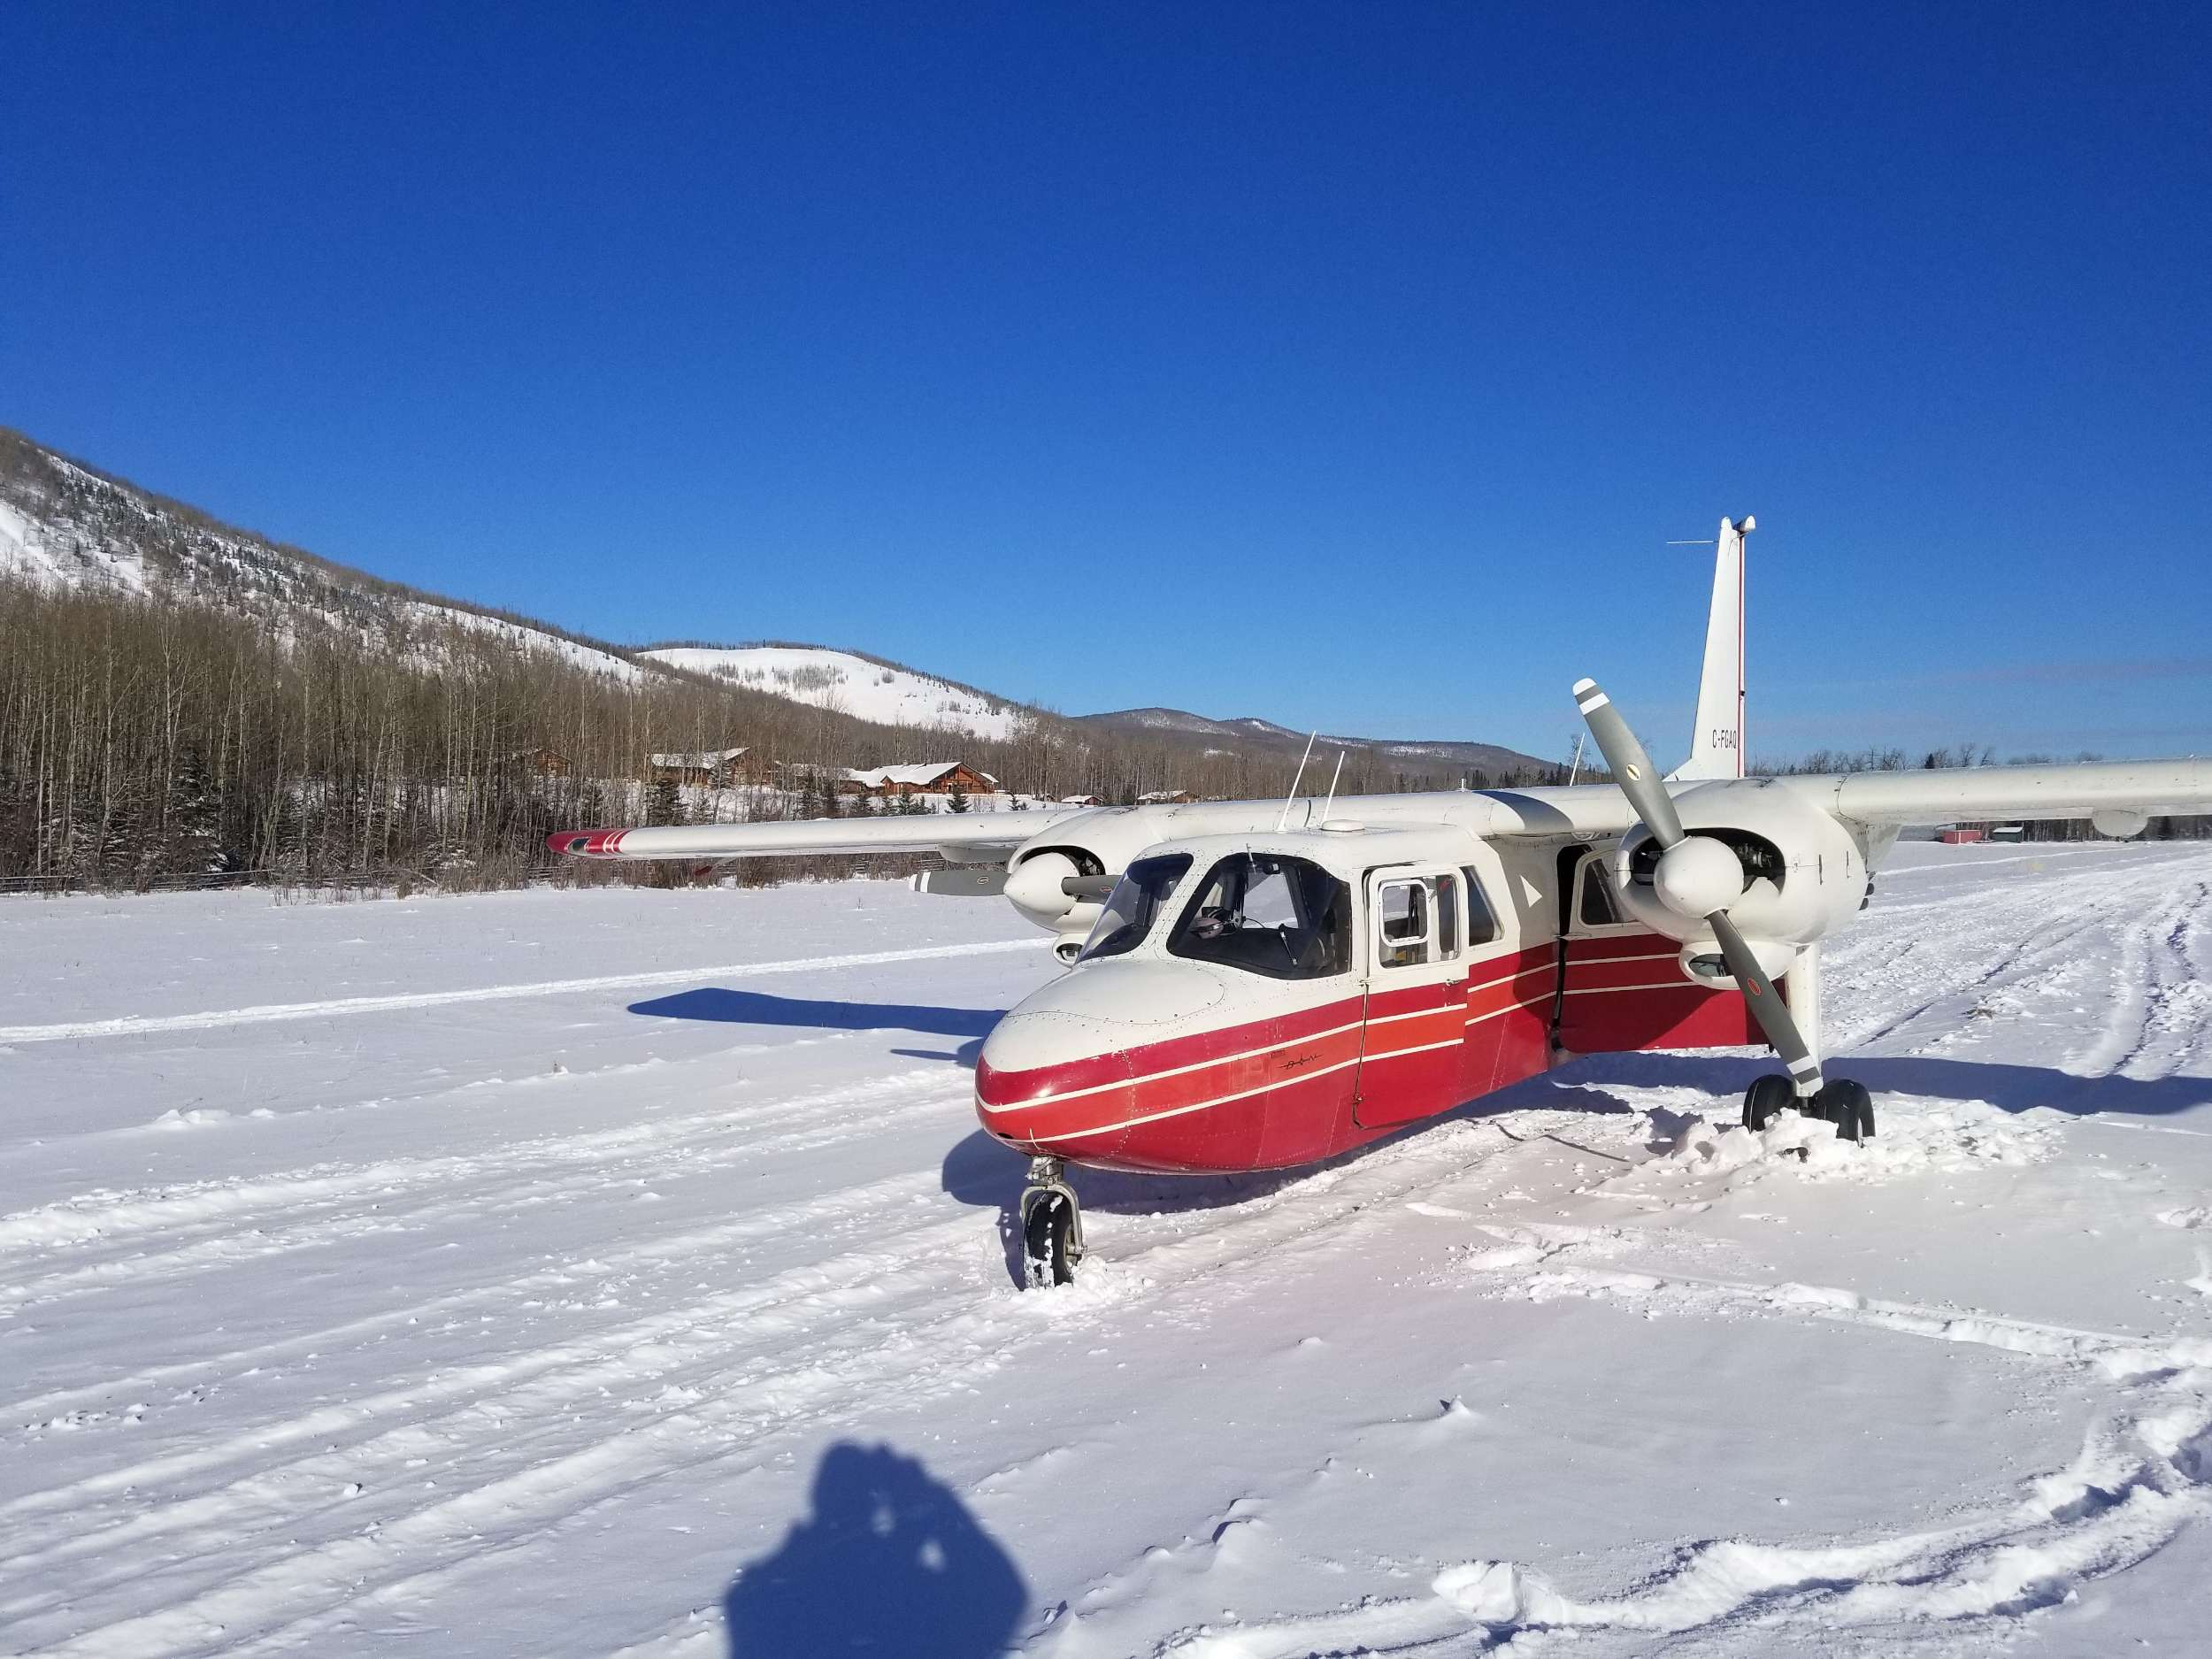 plane on snow area